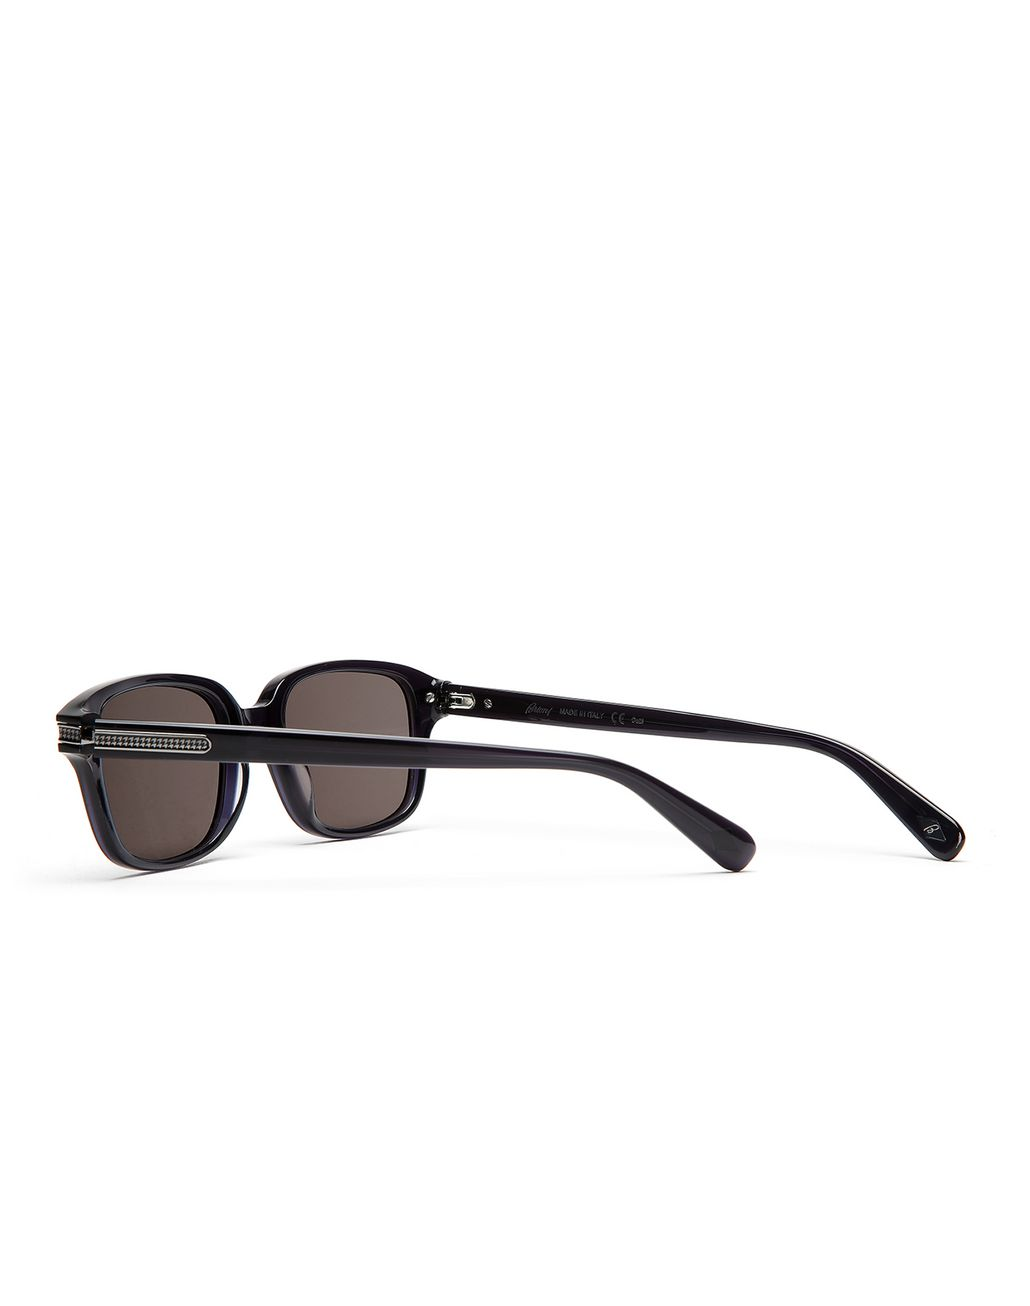 BRIONI Navy Blue Squared Sunglasses with Grey Lenses  Sunglasses Man d